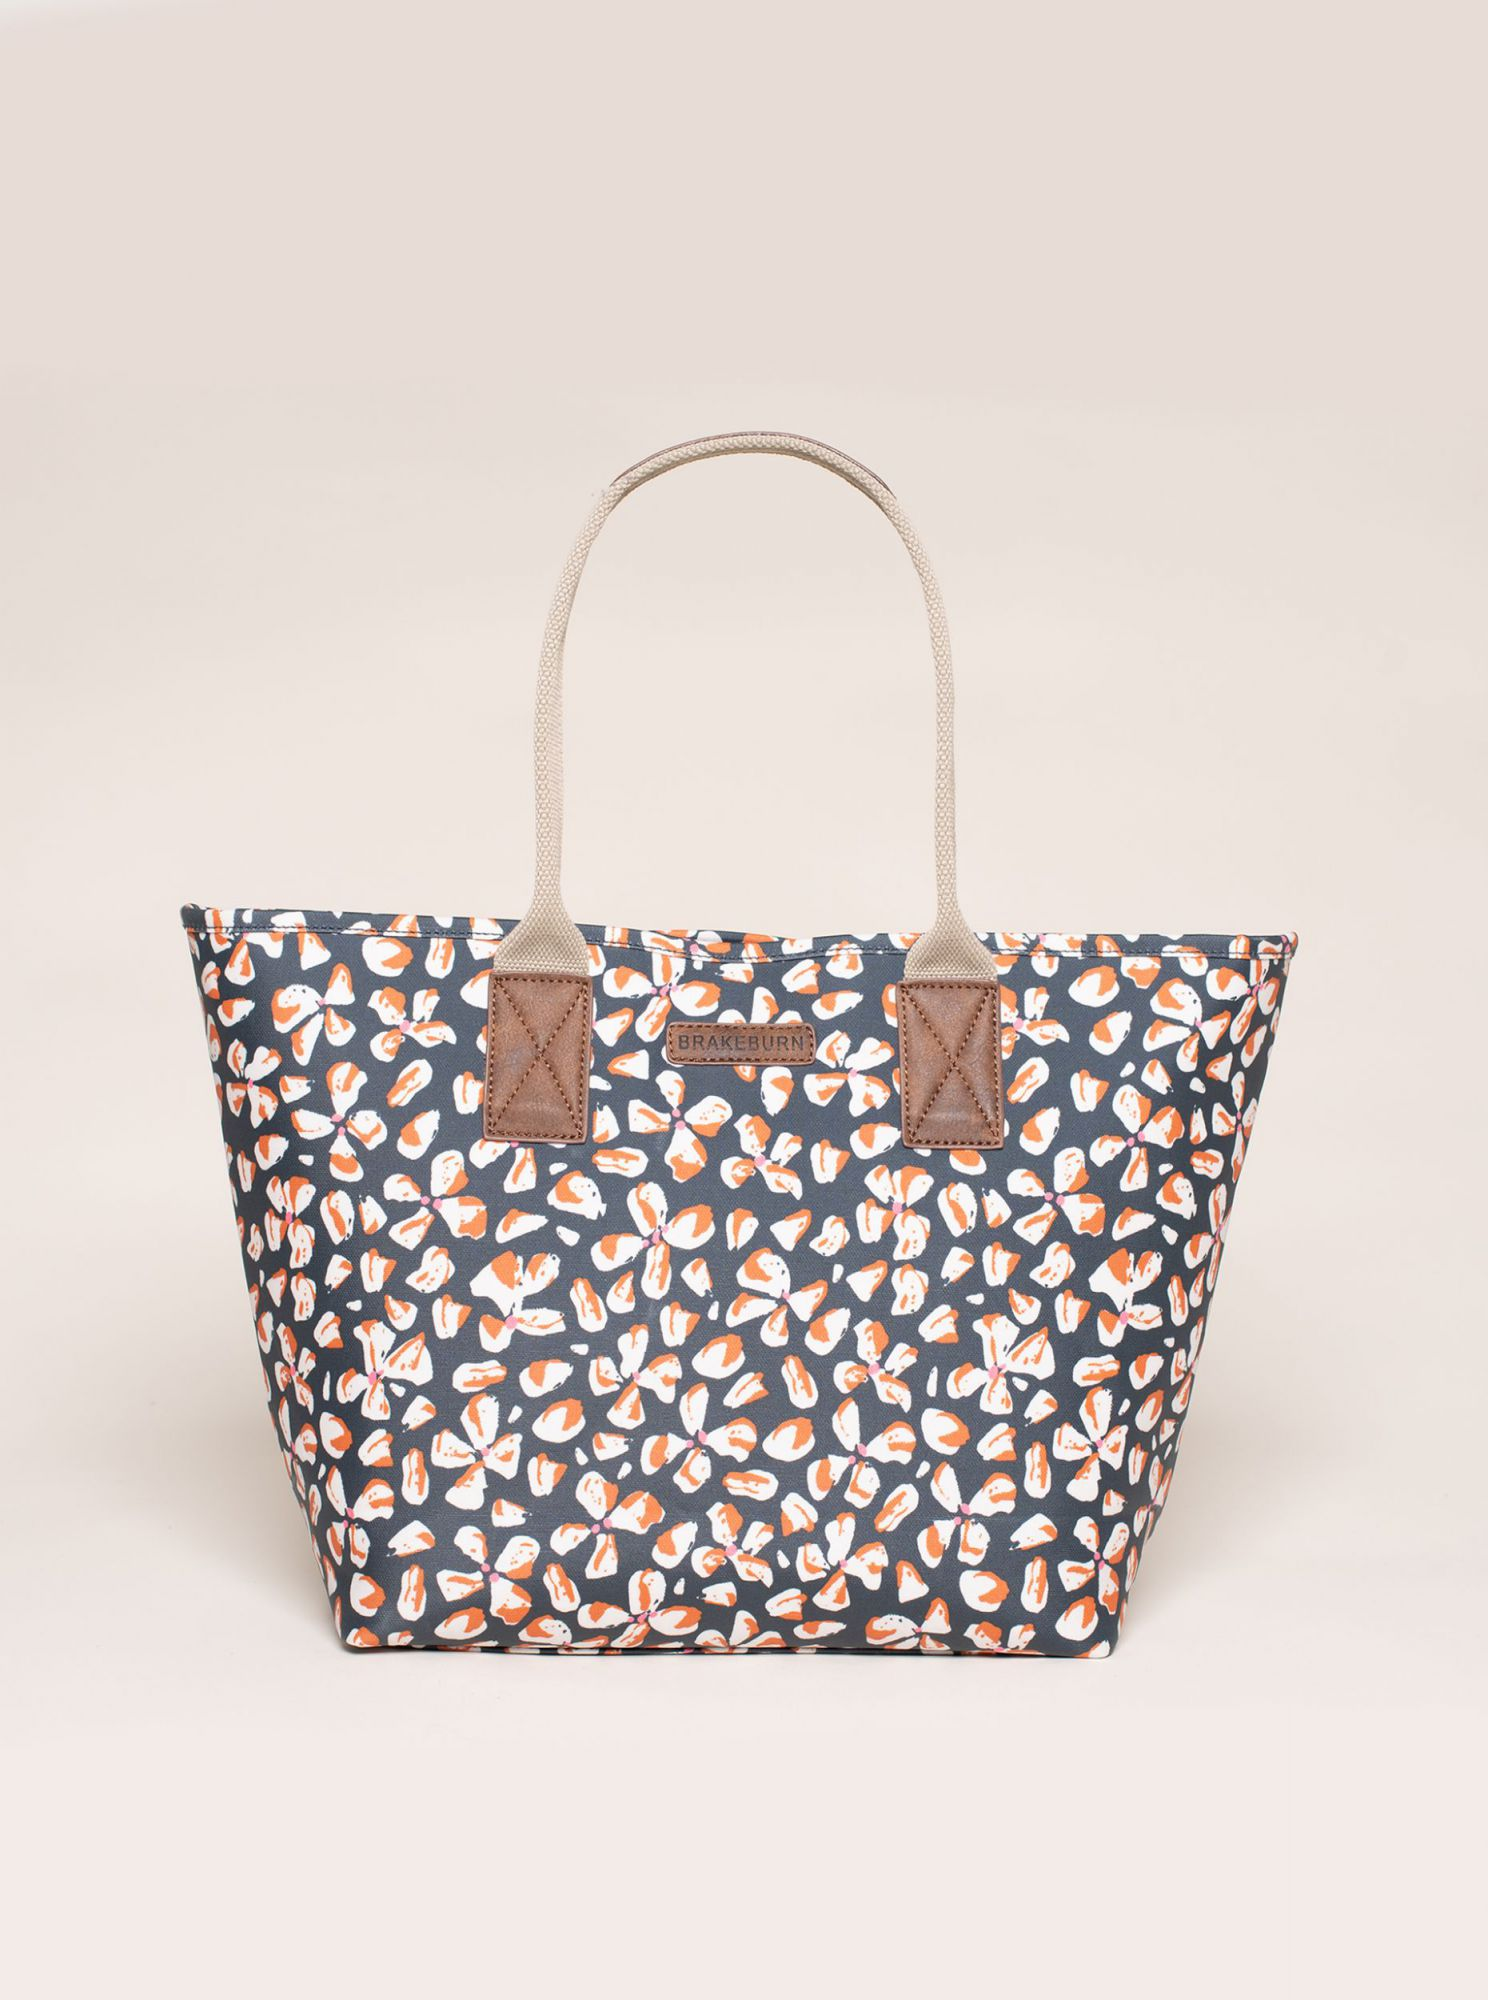 Blue flowered Brakeburn handbag